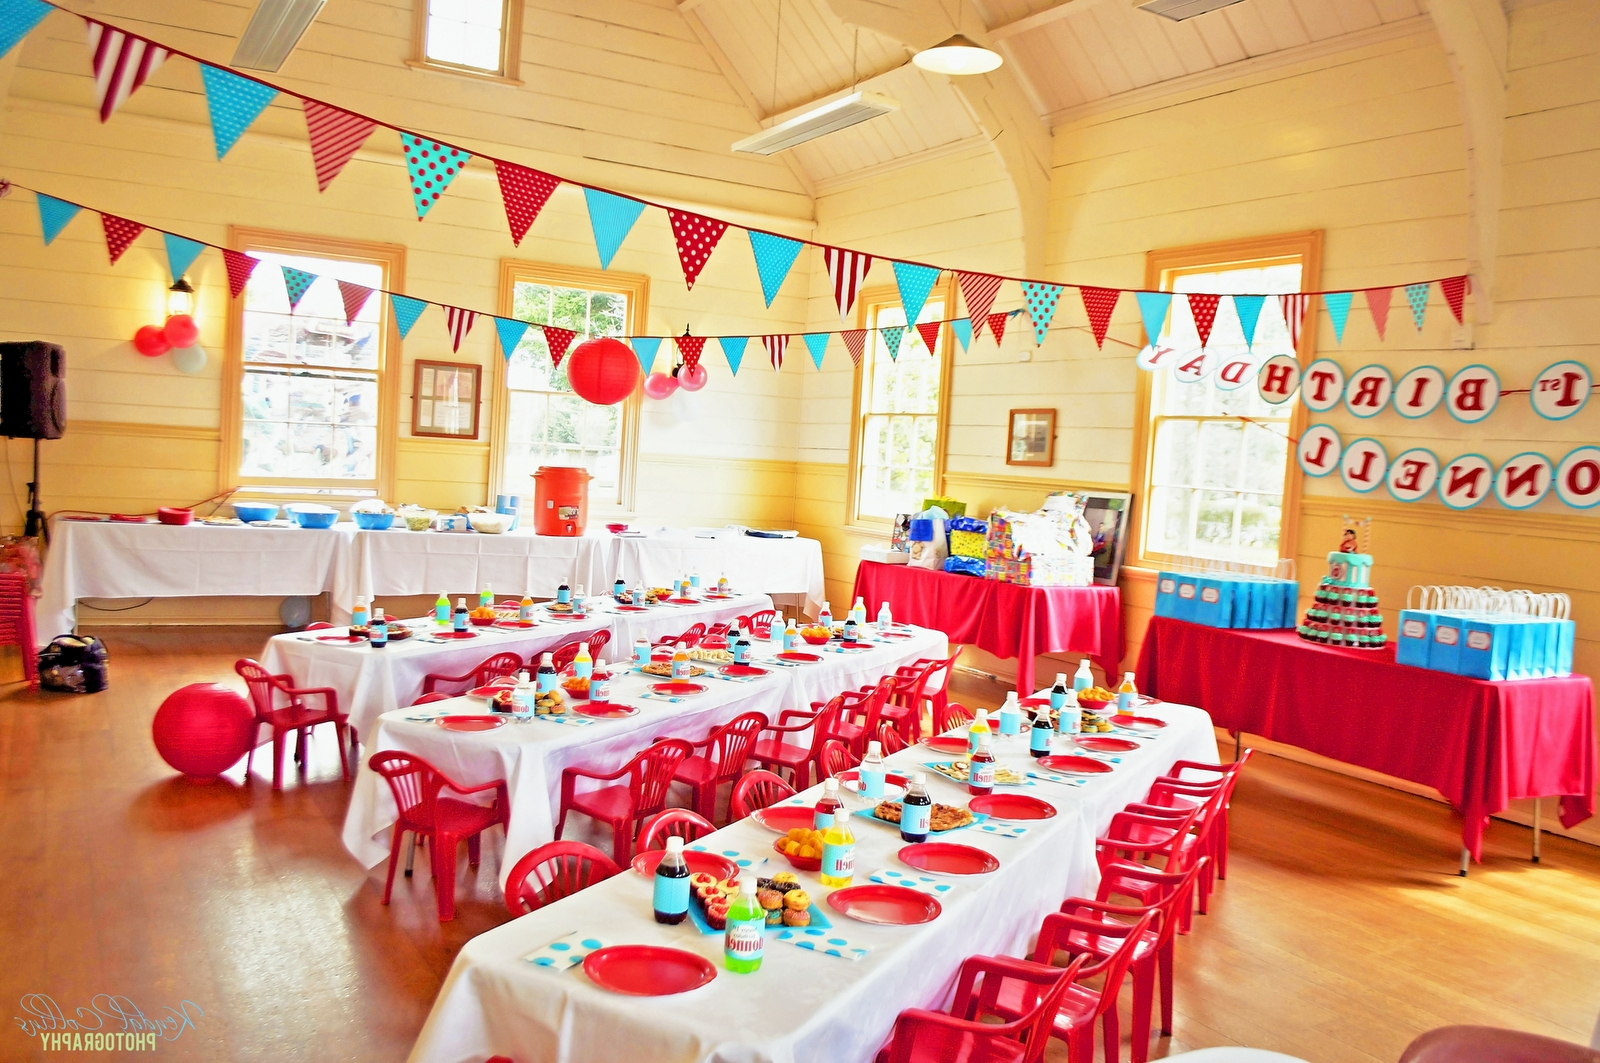 10 Stylish Birthday Party Ideas For A 3 Year Old Boy At